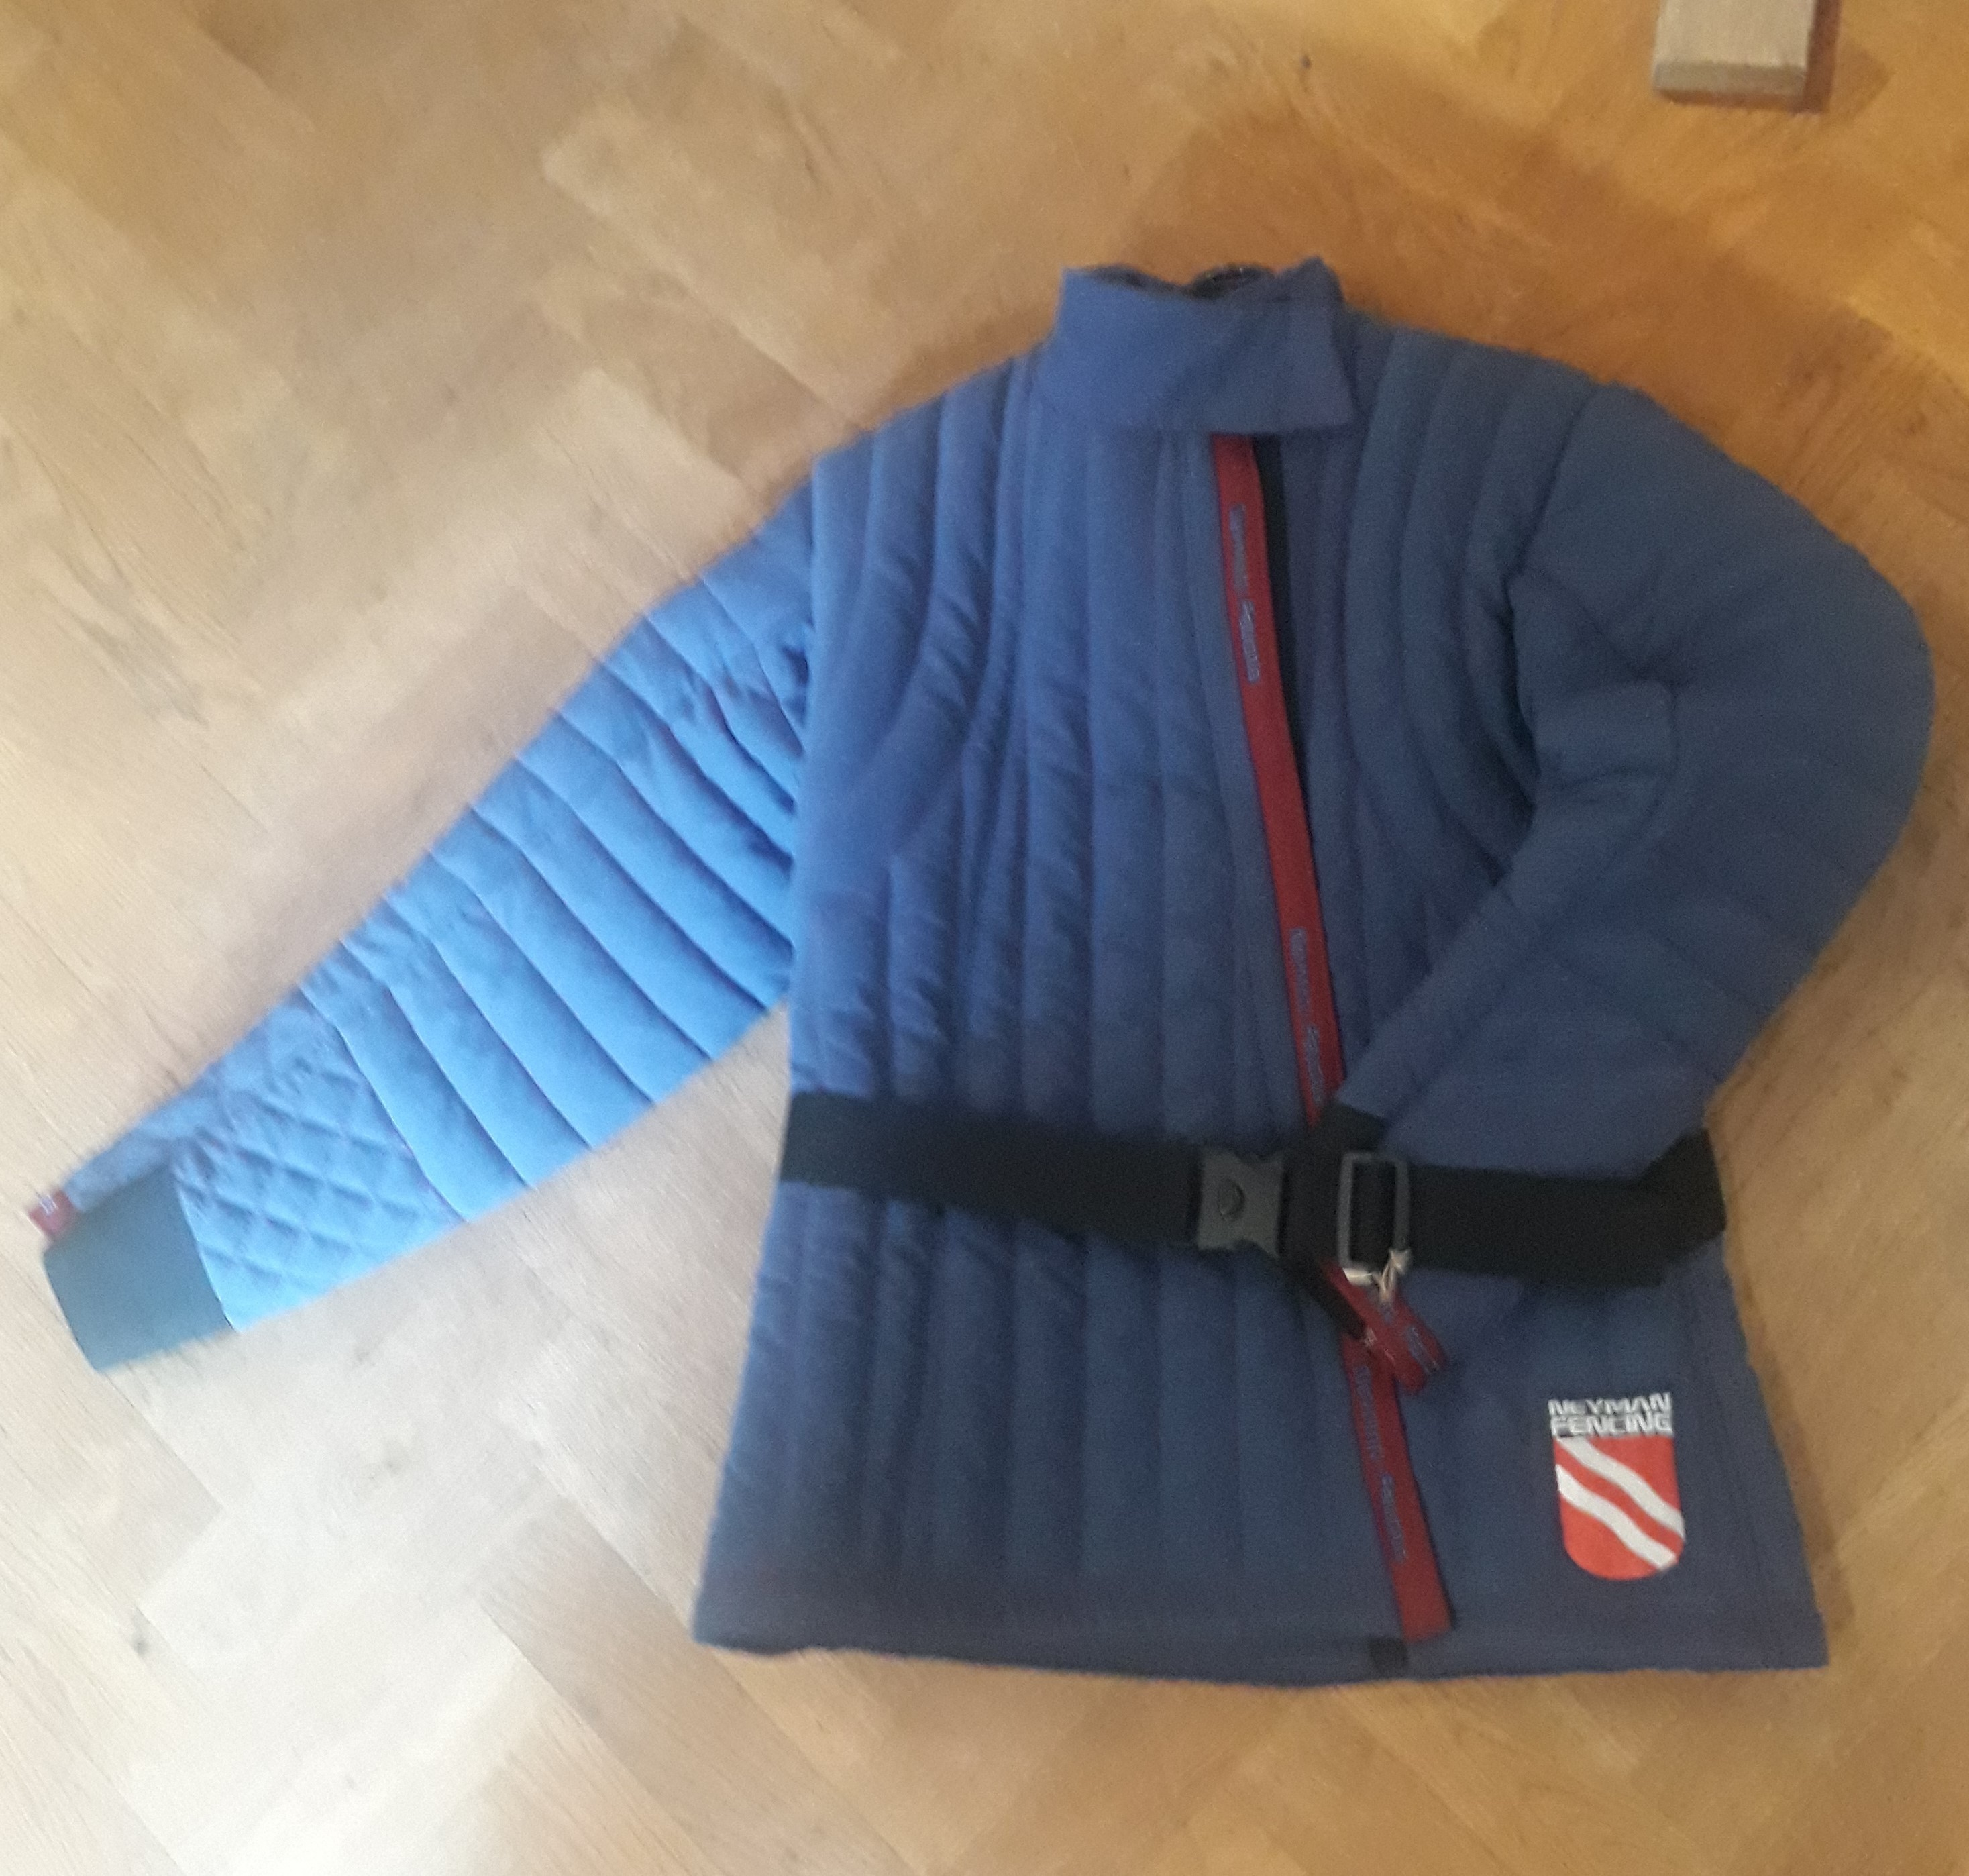 Fencing jacket Neyman (old version)